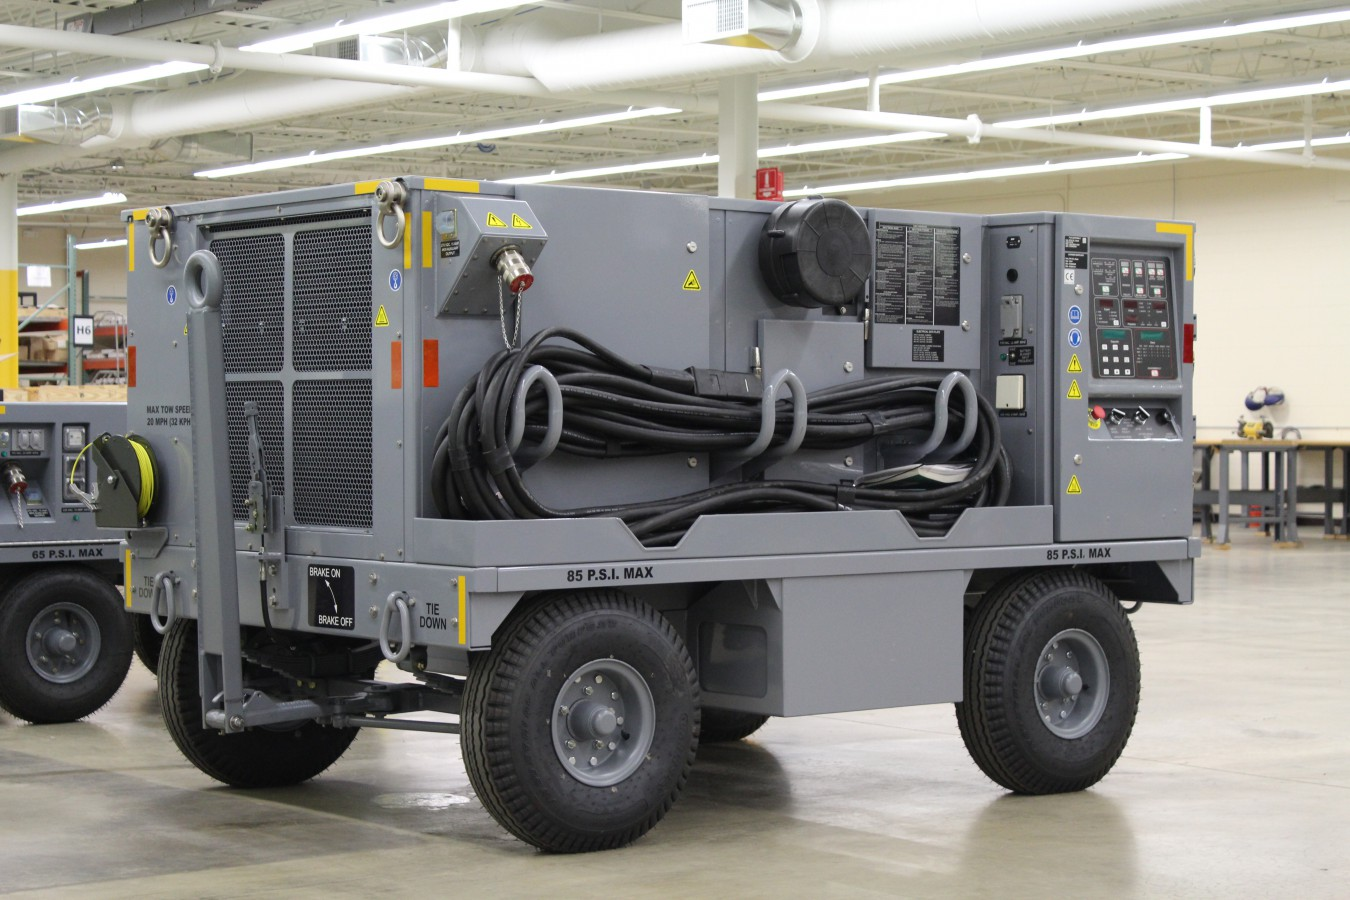 F-35 Diesel Ground Power Unit-Production Line-Lockheed Martin JSF Generator to power up F-35 JSF